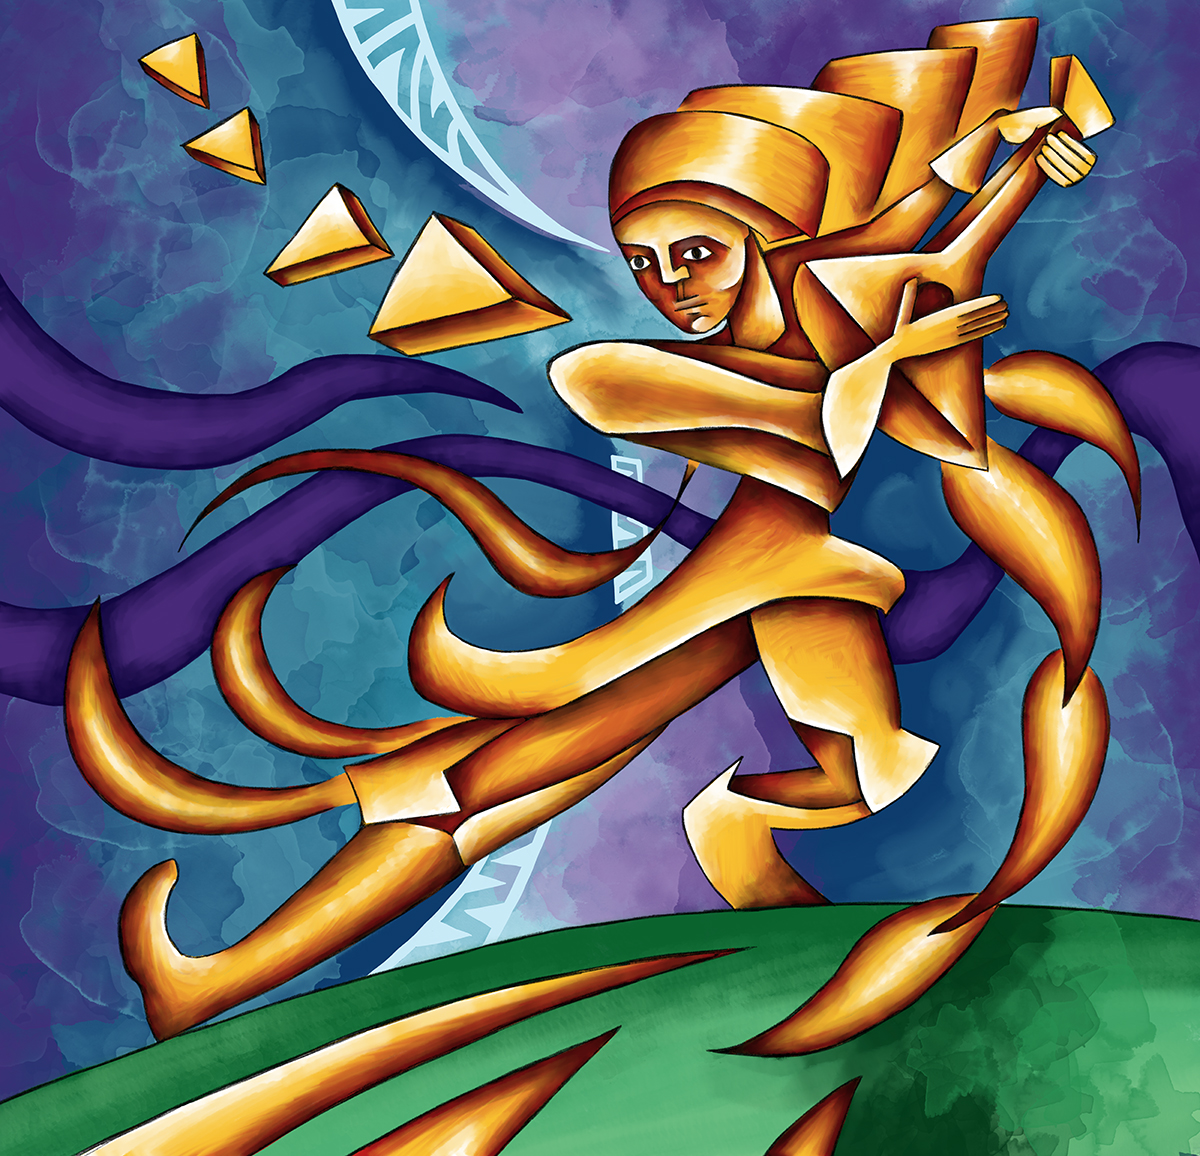 A piece of artwork showing a musician playing the balalaika stringed instrument. Stylistically this piece of artwork has links with expressionism.